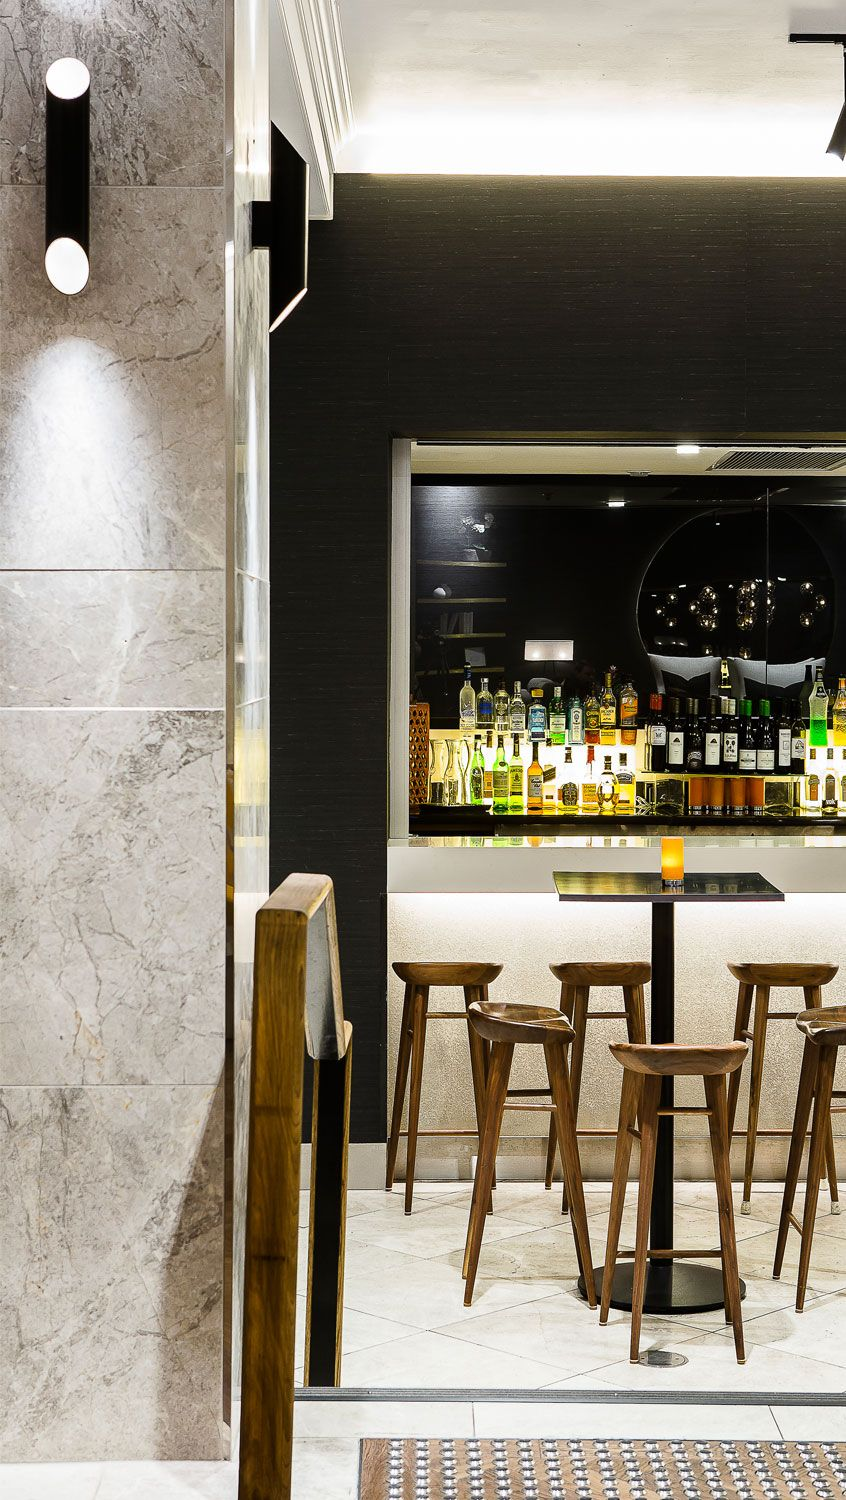 Mercure Hotel Sydney Airport Interiors Work At The Mercure Hotel Sydney Airport M A R B L E